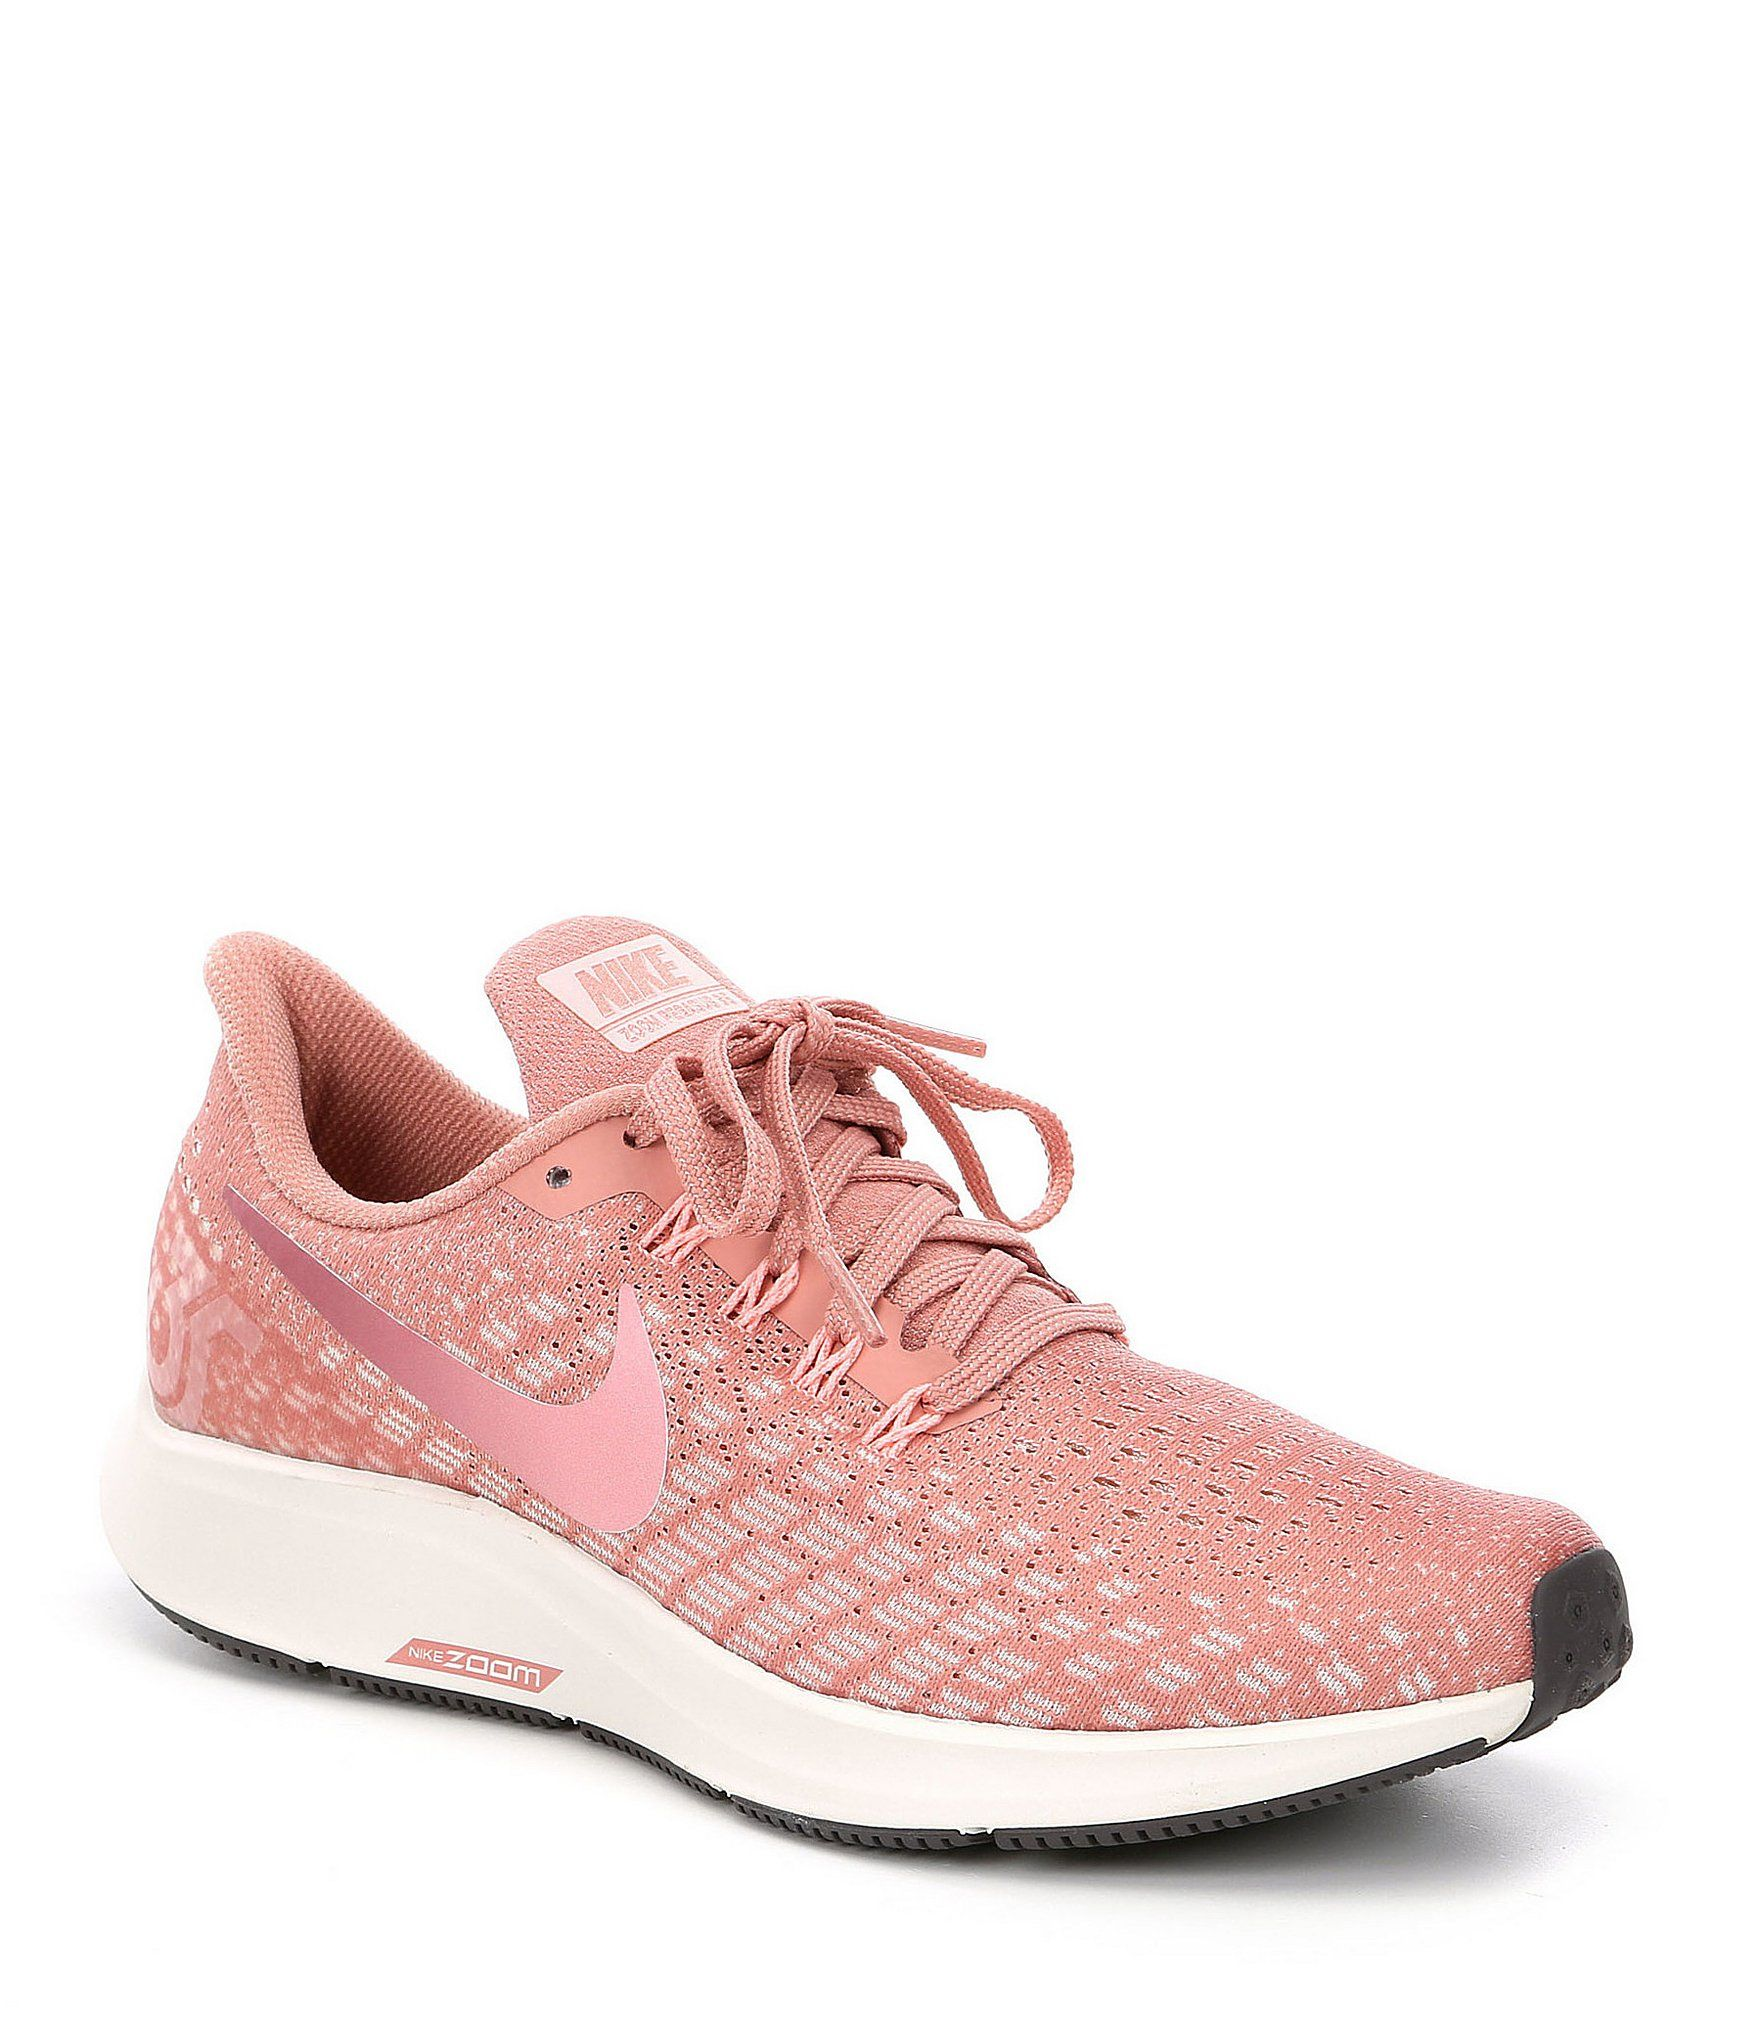 outlet store c0e47 82943 tenis nike para mujer, tenis nike mujer blancos, tenis nike mujer negro,  zapatos